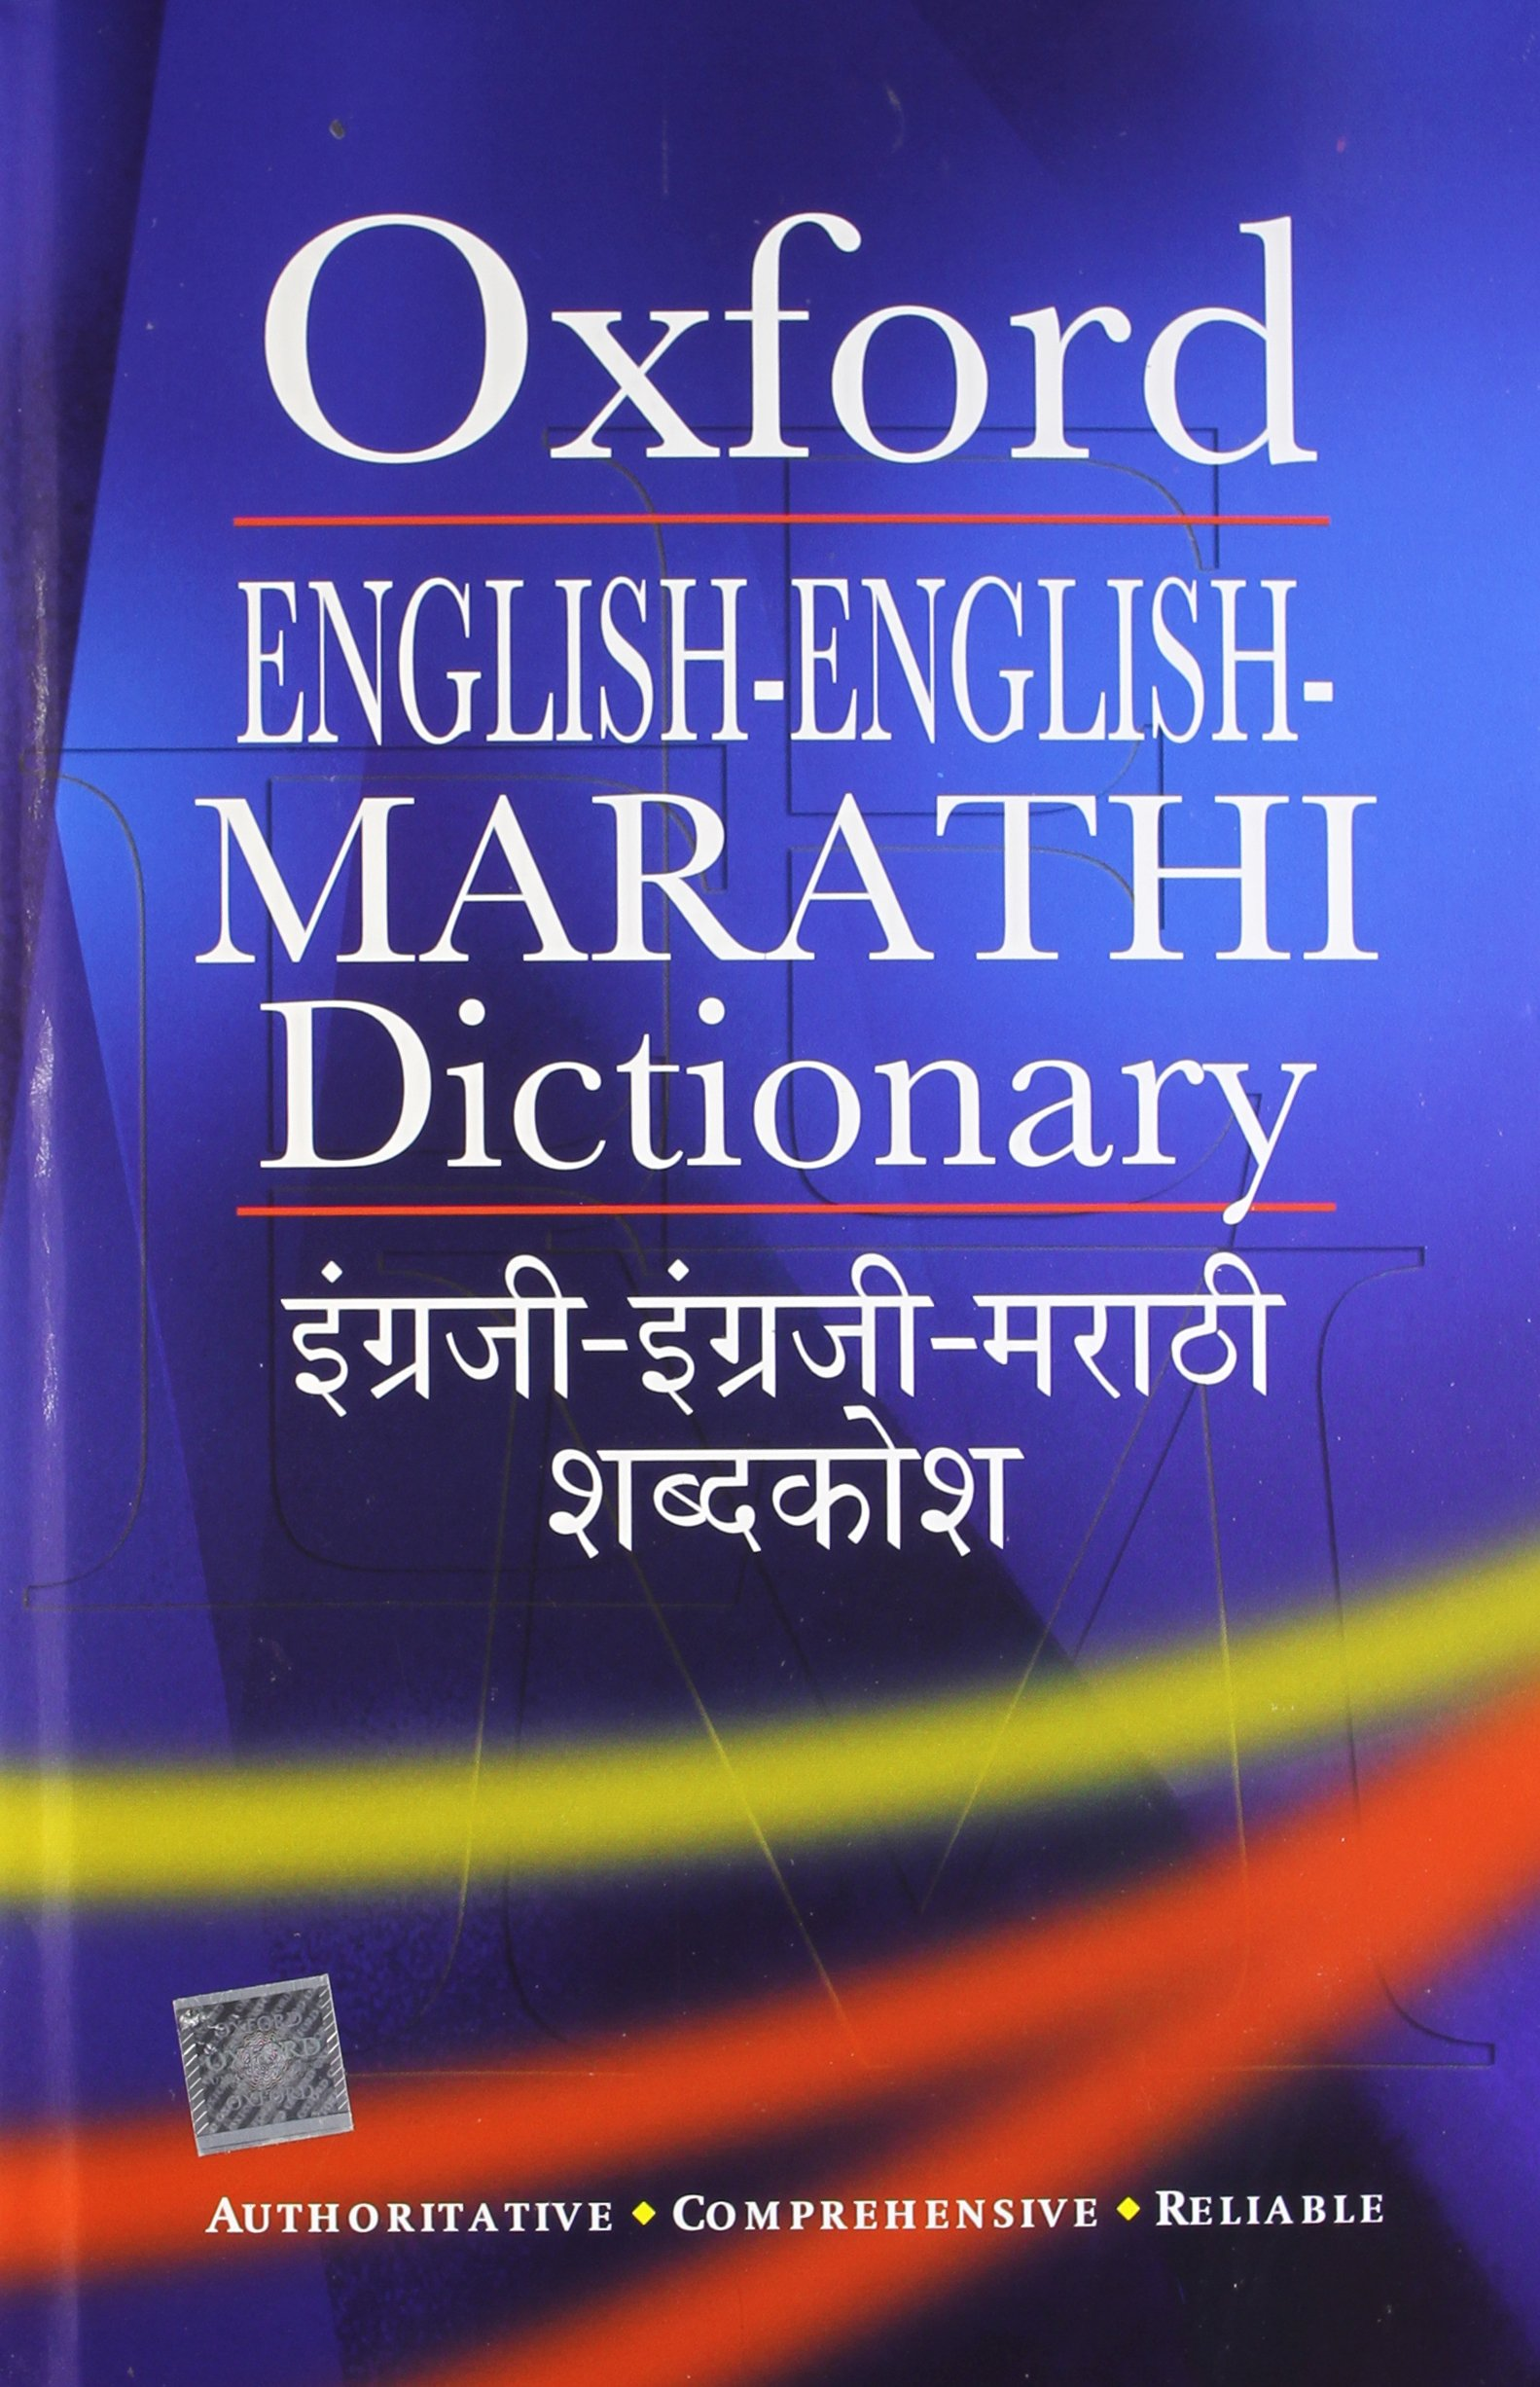 English Dictionary Pdf For Mobile